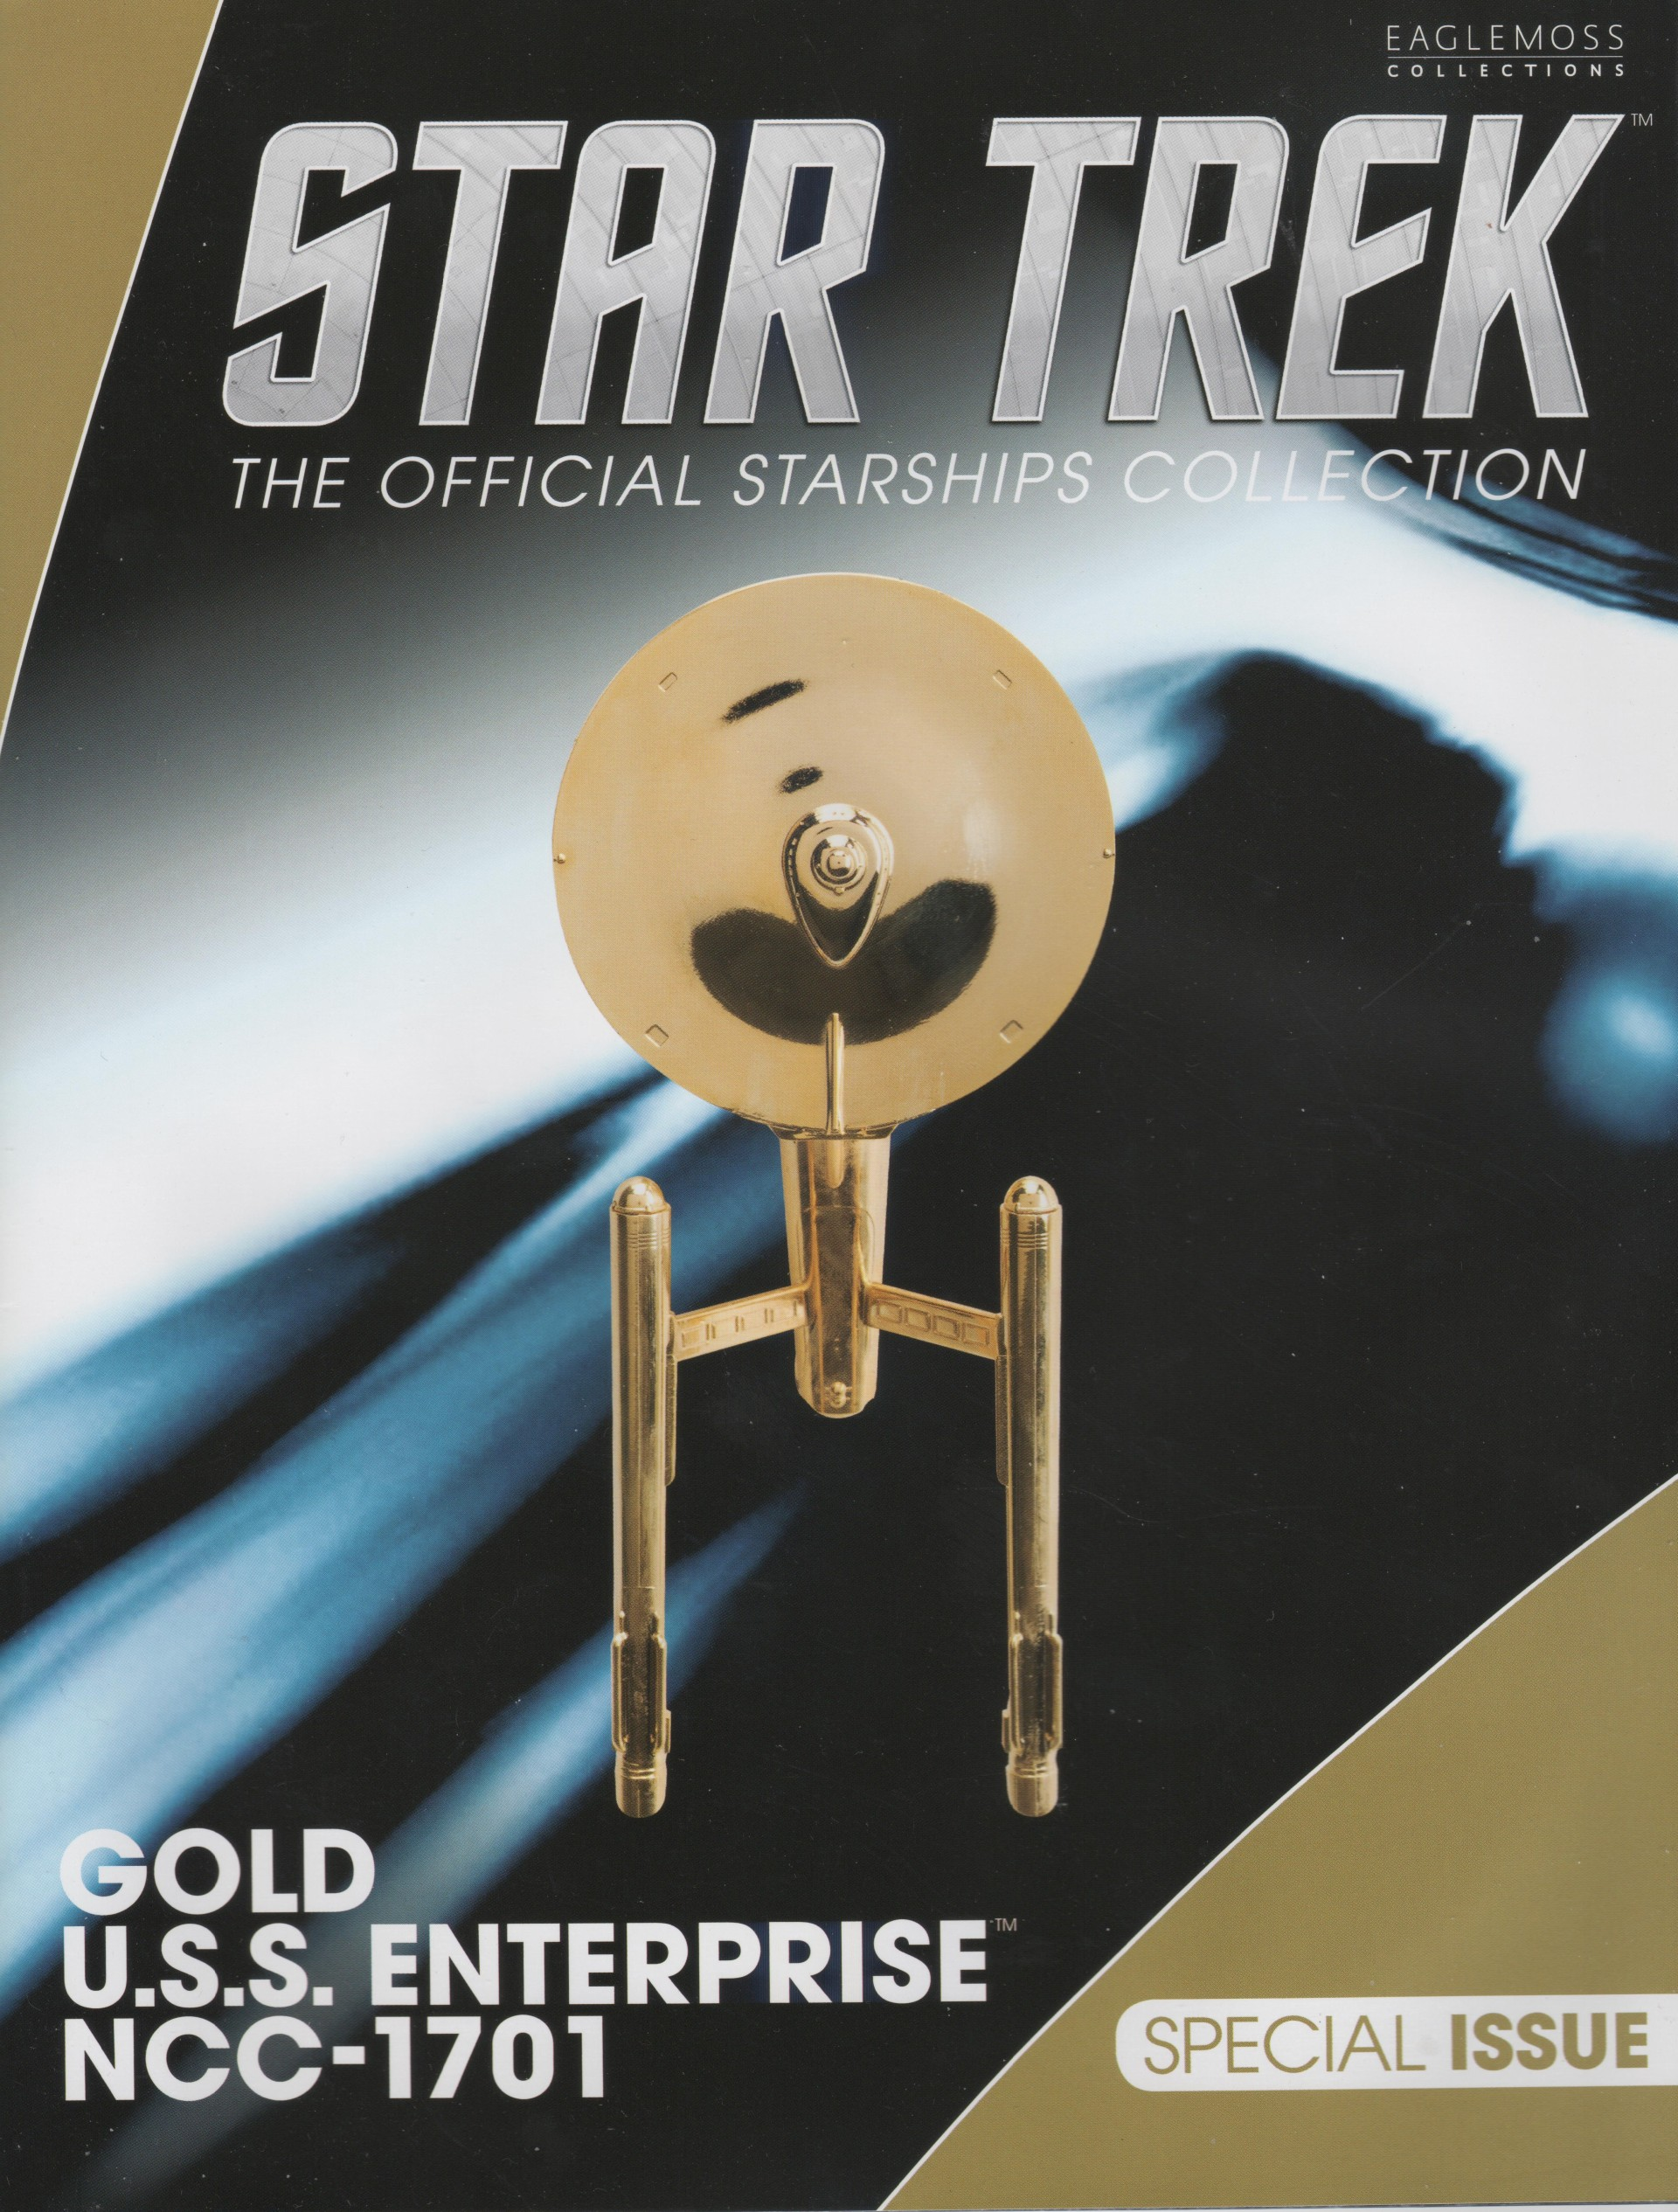 Star Trek The Official Starships Collection Special #23 U.S.S. Enterprise NCC-1701 Gold Model Starship